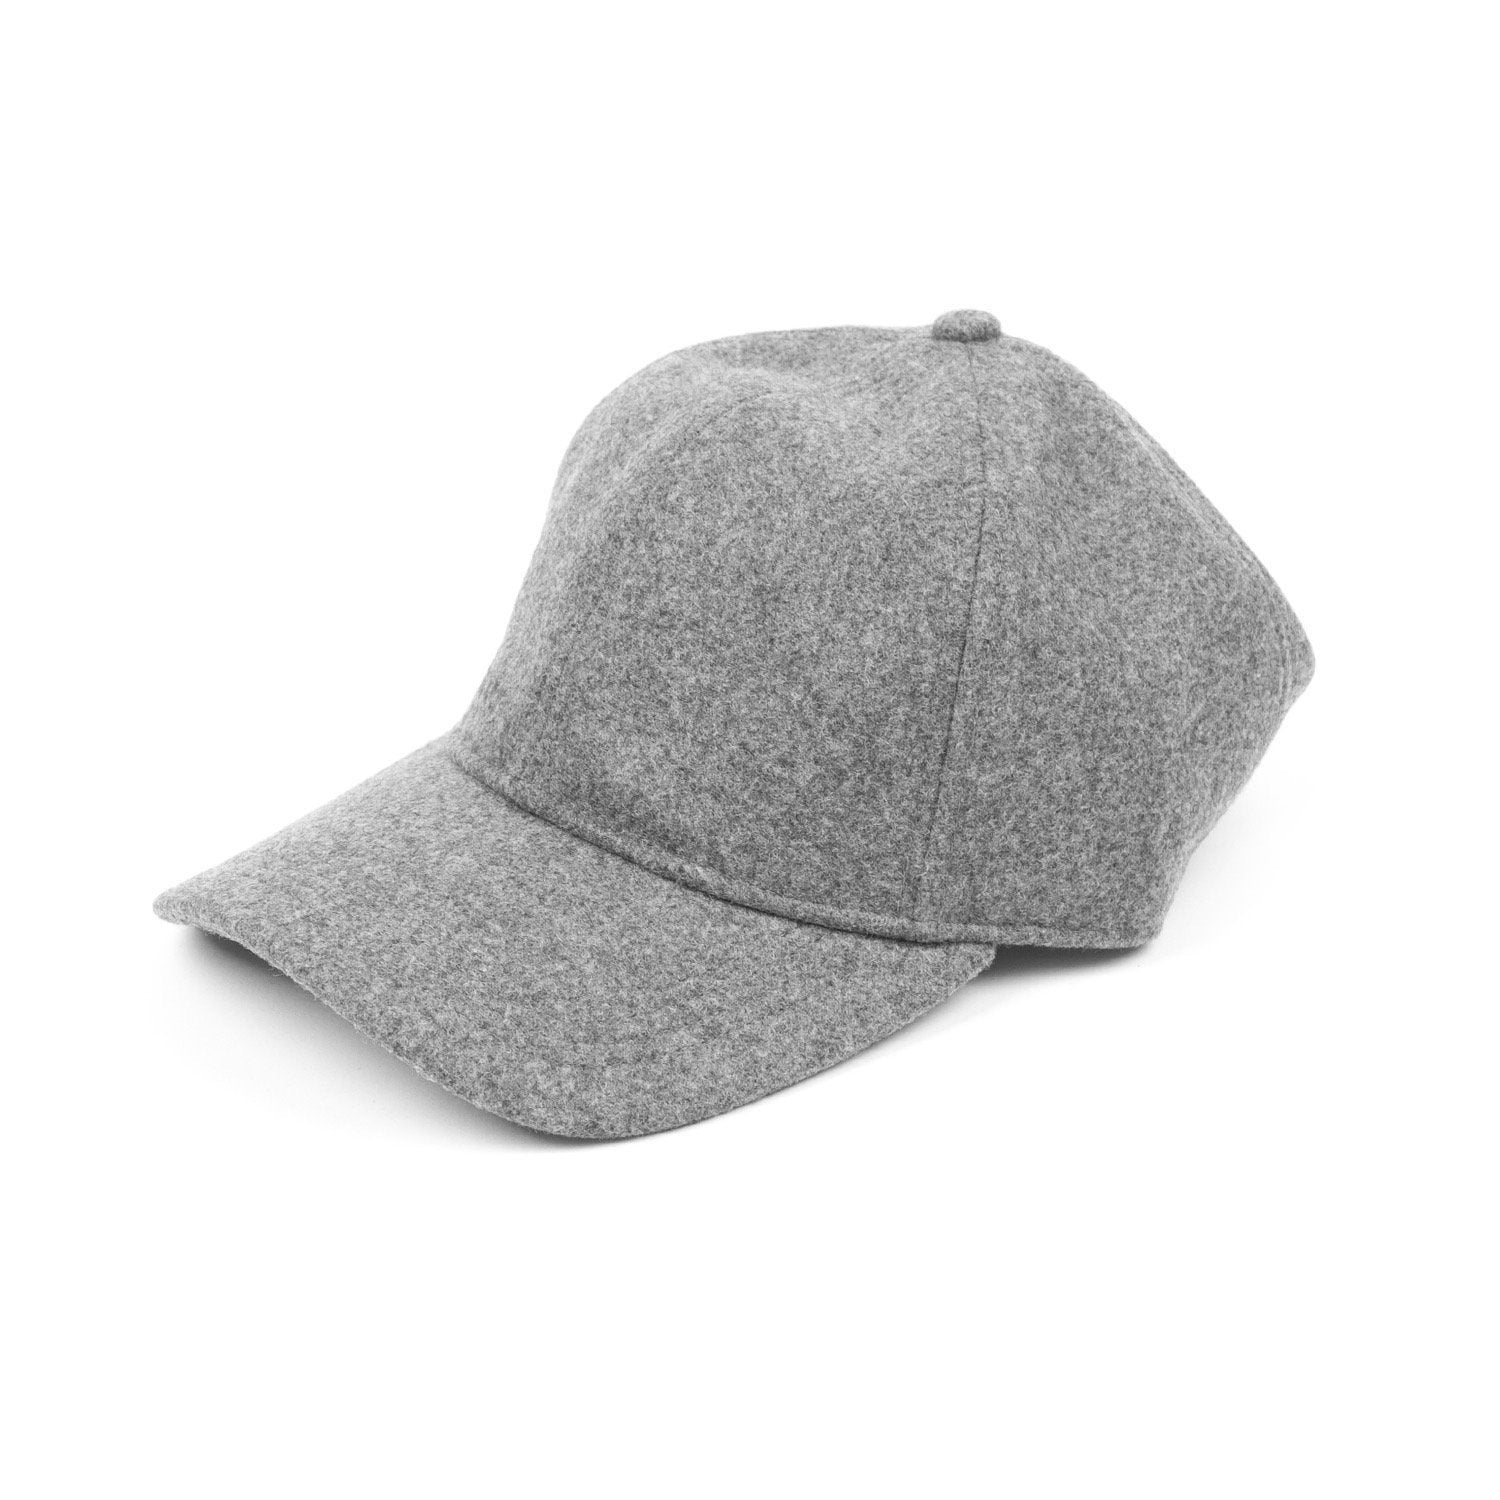 Barbour Coopworth Sports Cap (Grey) 1